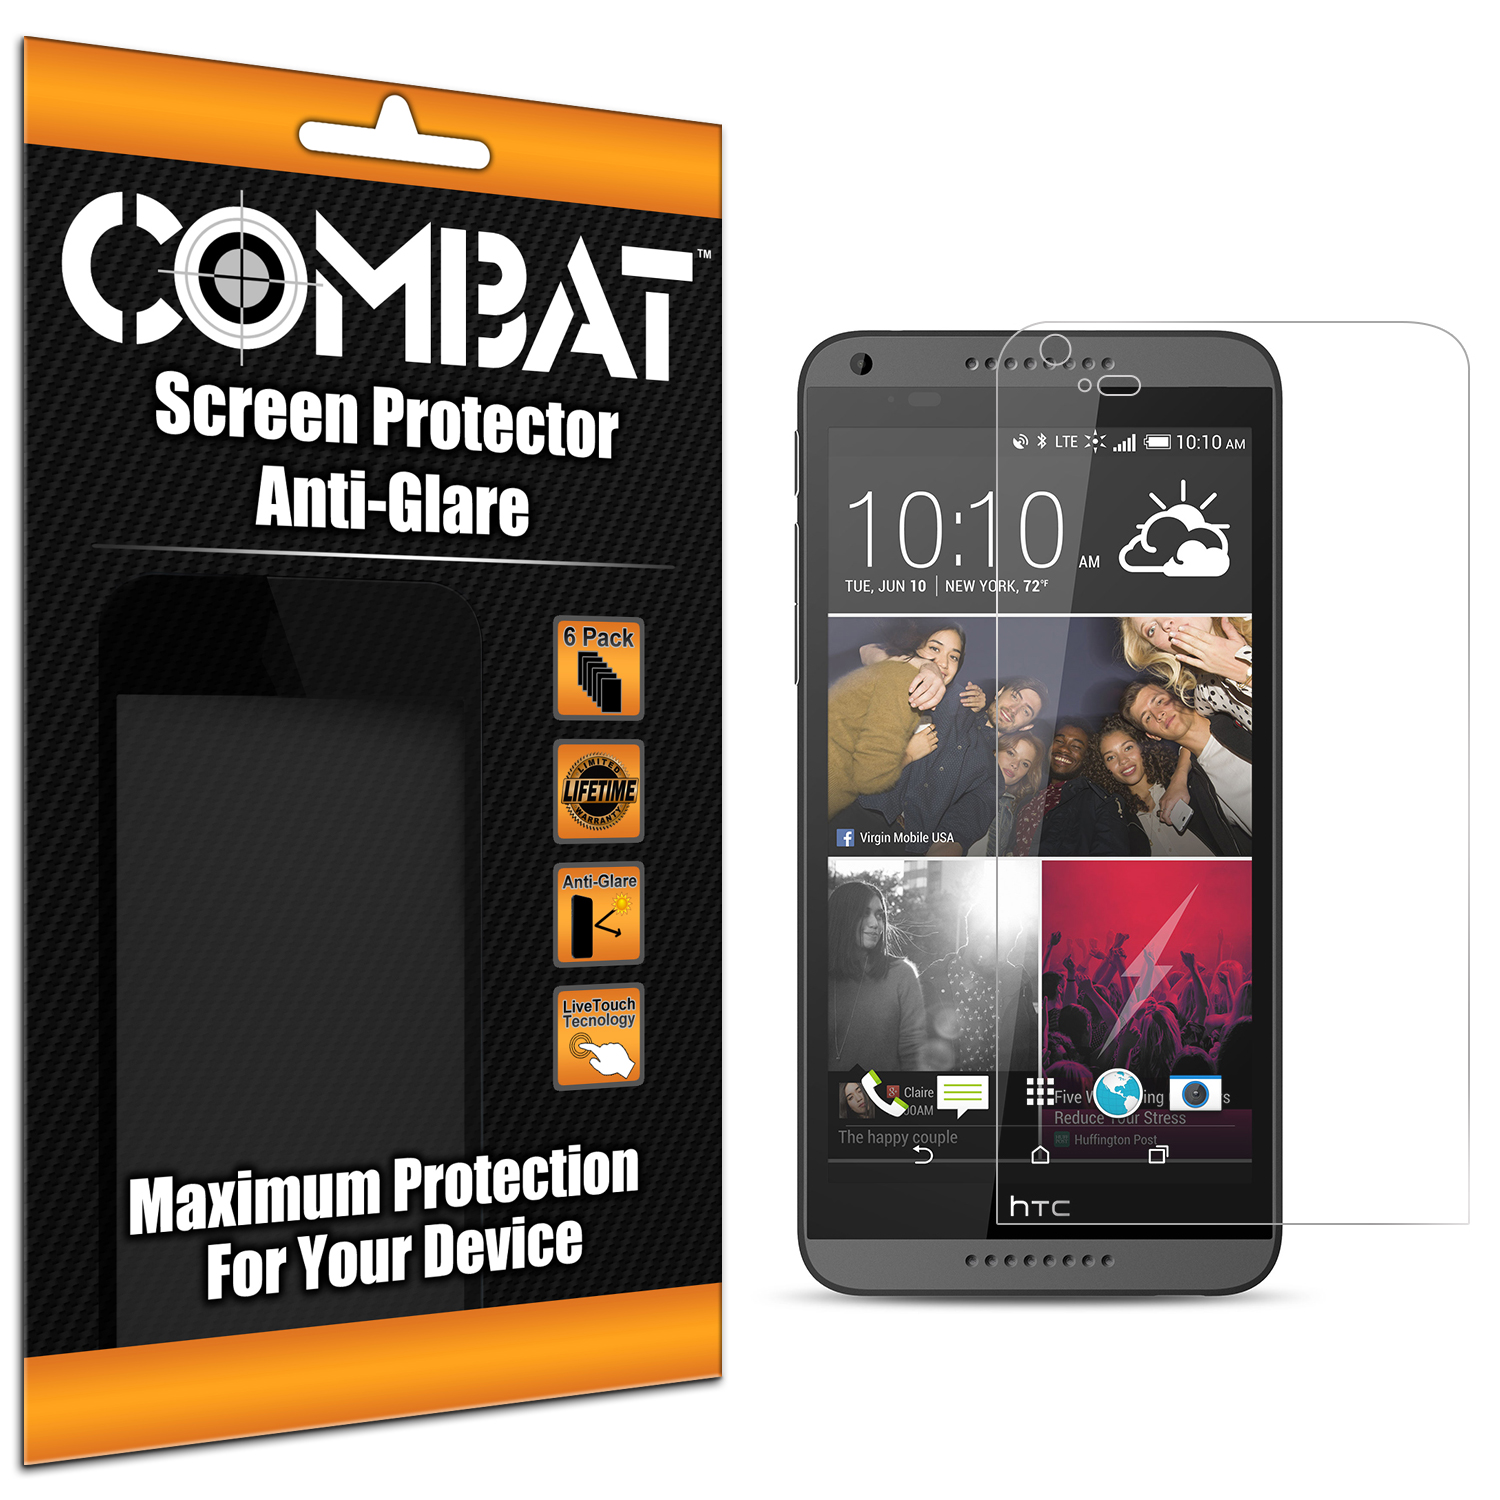 HTC Desire 816 Combat 6 Pack Anti-Glare Matte Screen Protector